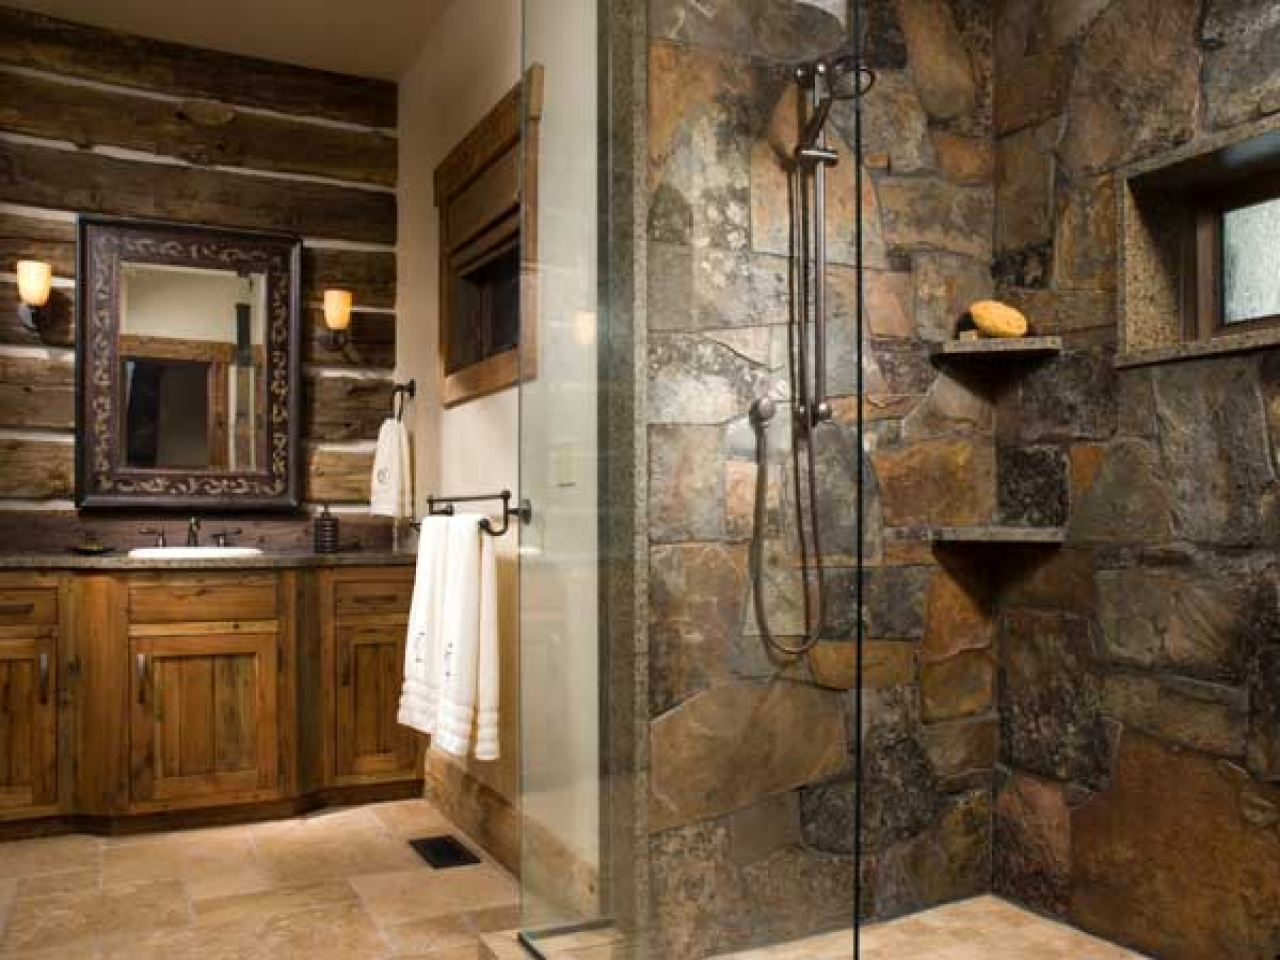 Vanity rustic style is usually made of wood design ideas.